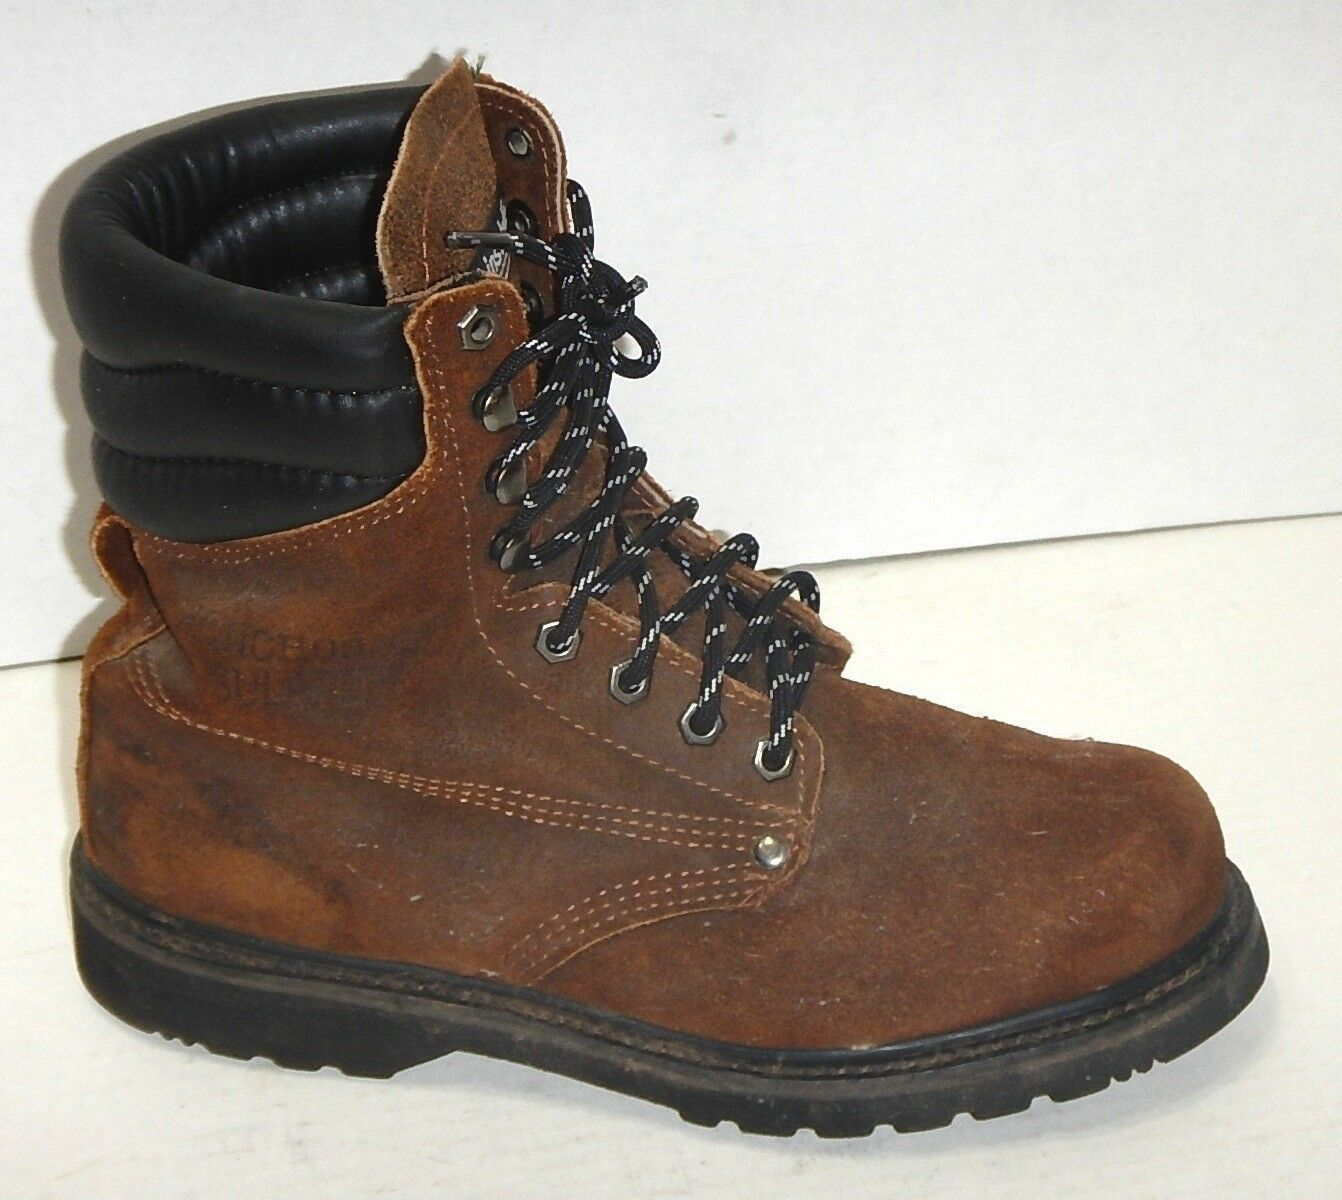 HONCHOS  Thinsulate Leather Genuine WorkBoots sz 6.5 E Wide  PERFECT